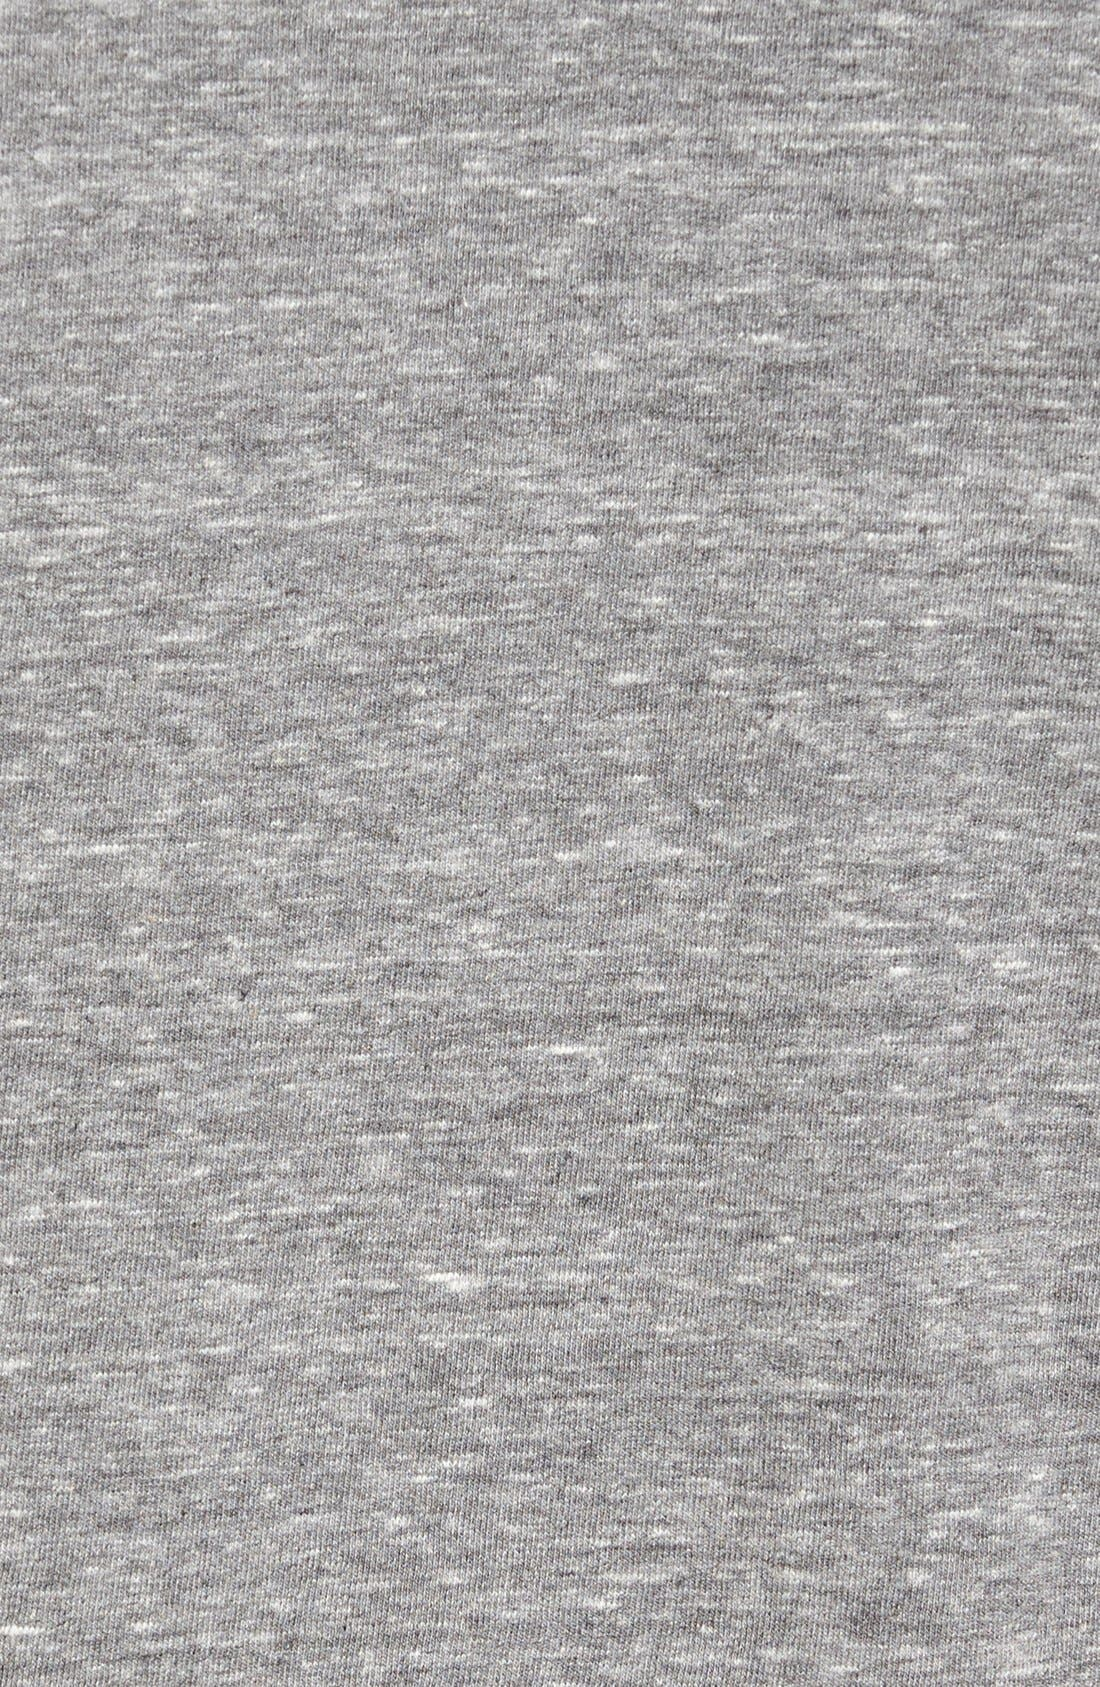 'Waves' Graphic T-Shirt,                             Alternate thumbnail 5, color,                             Heather Grey